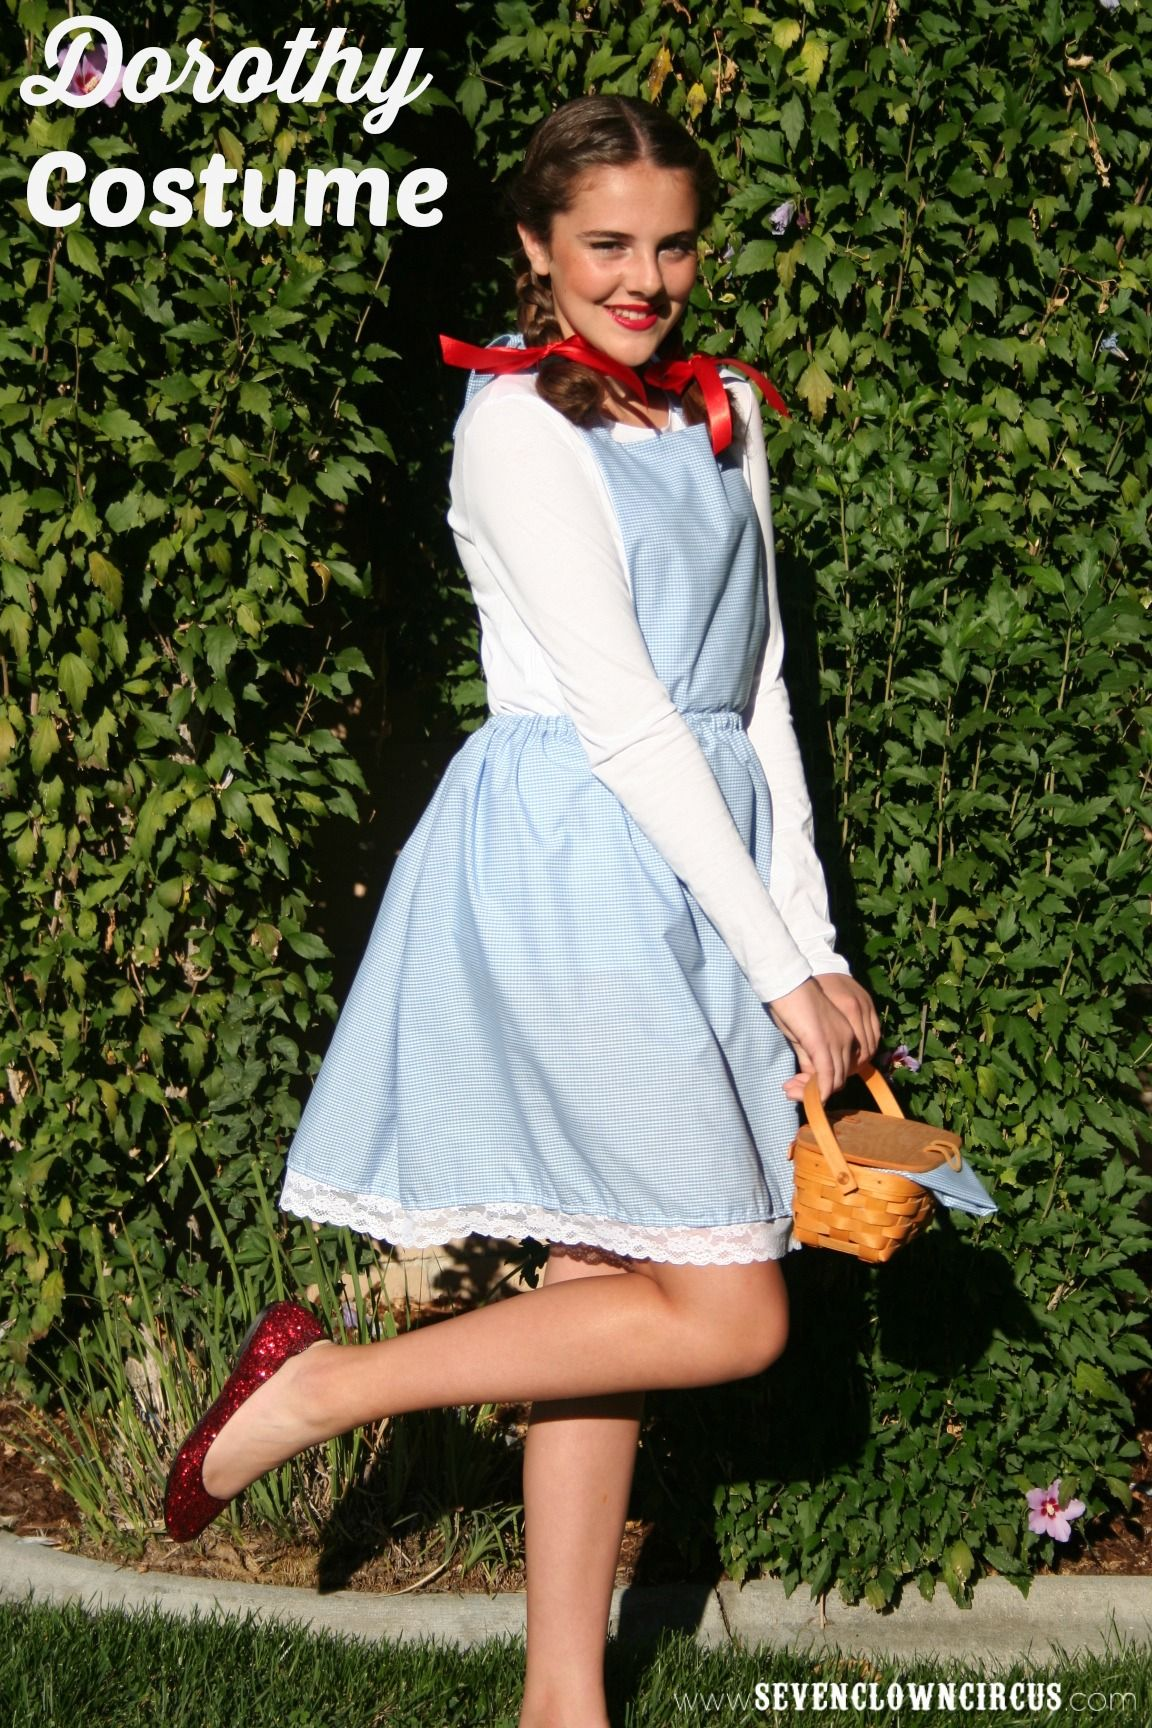 Easy homemade dorothy costume halloween pinterest for Easy homemade costume ideas for kids